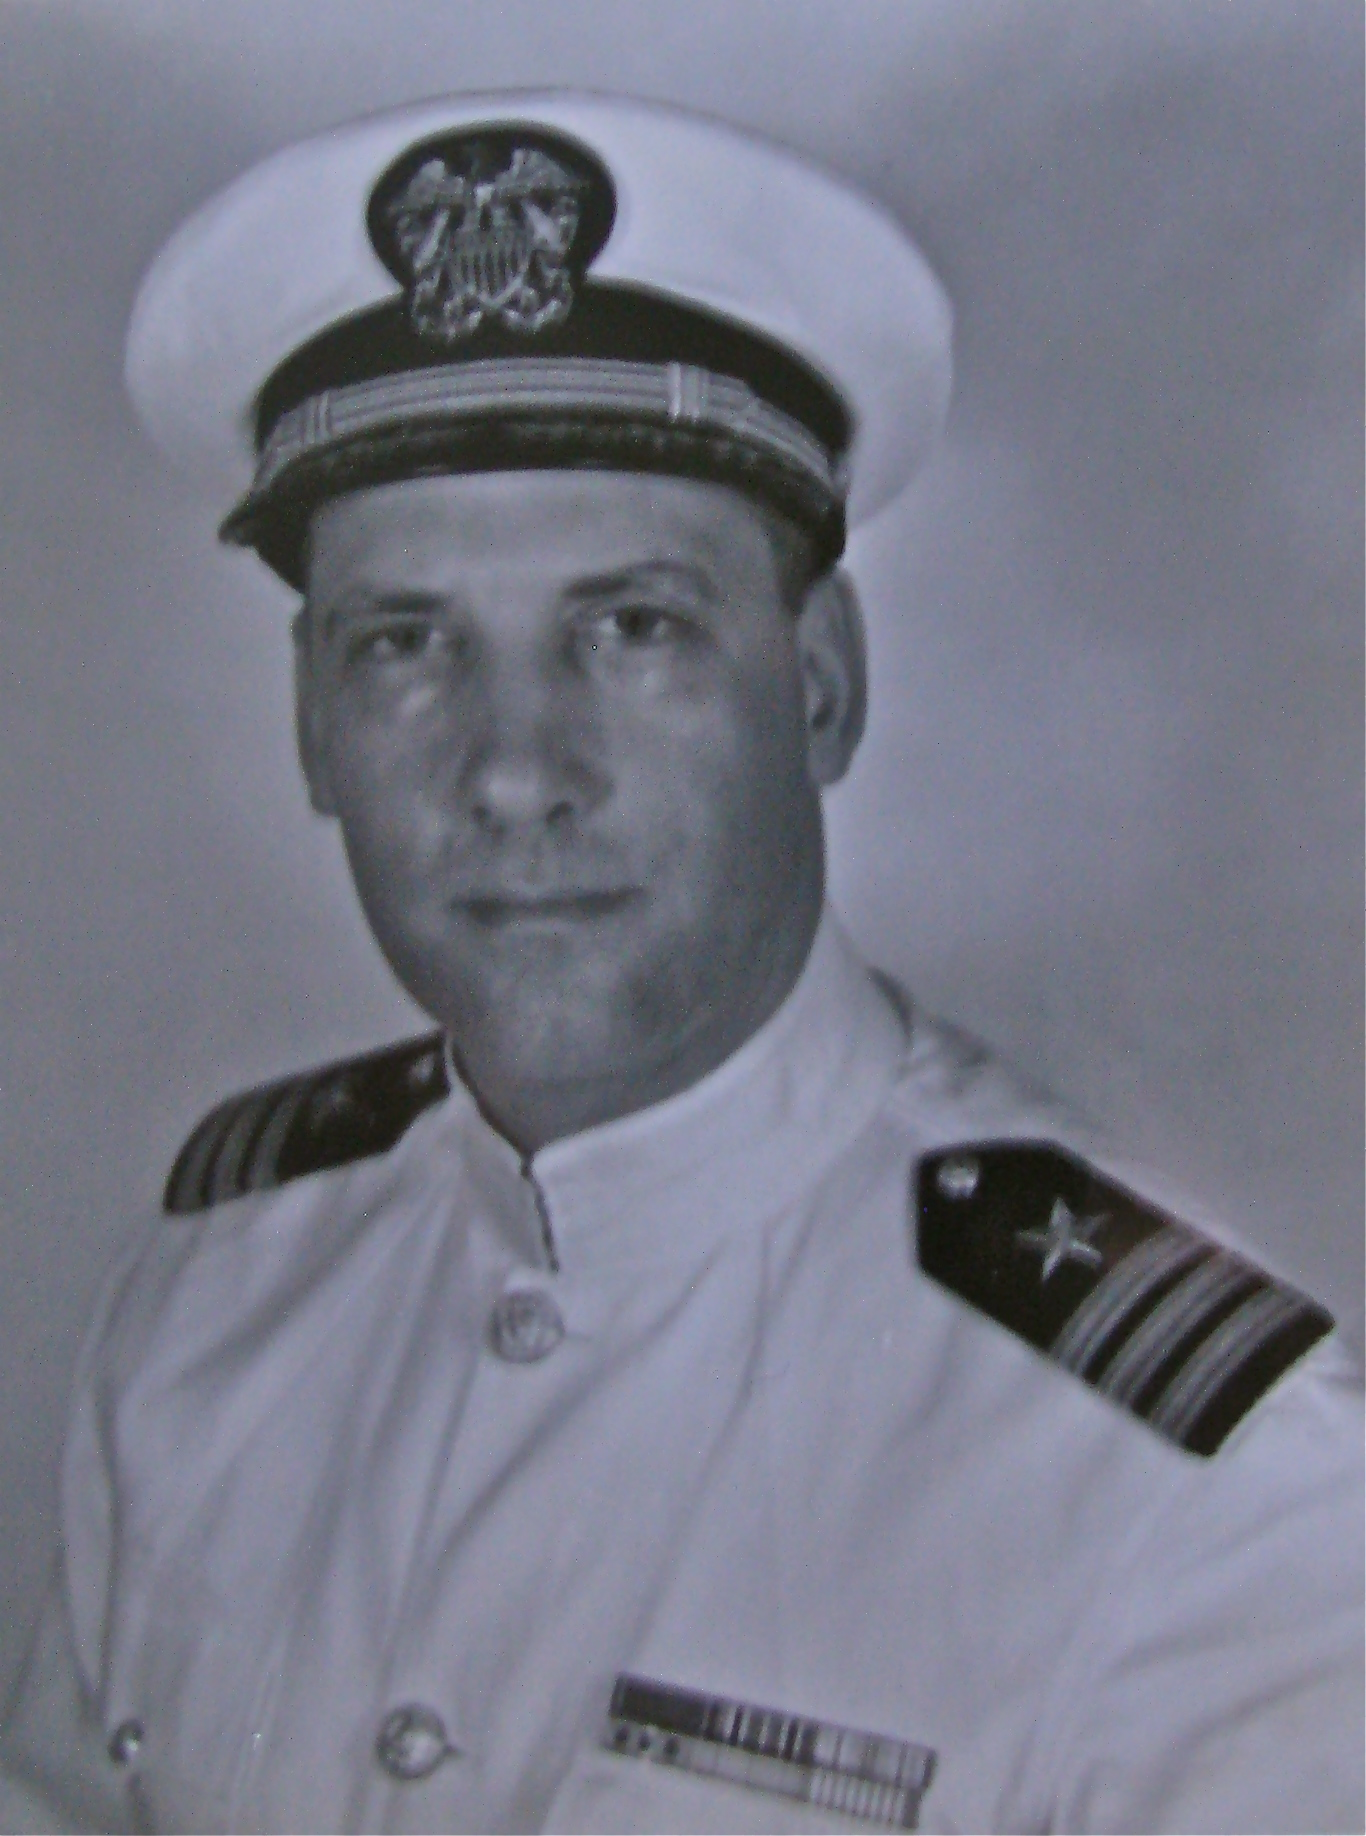 b1bc03a71c2 Cmdr. Philip Merrill is pictured in his summer dress uniform. He served in  the